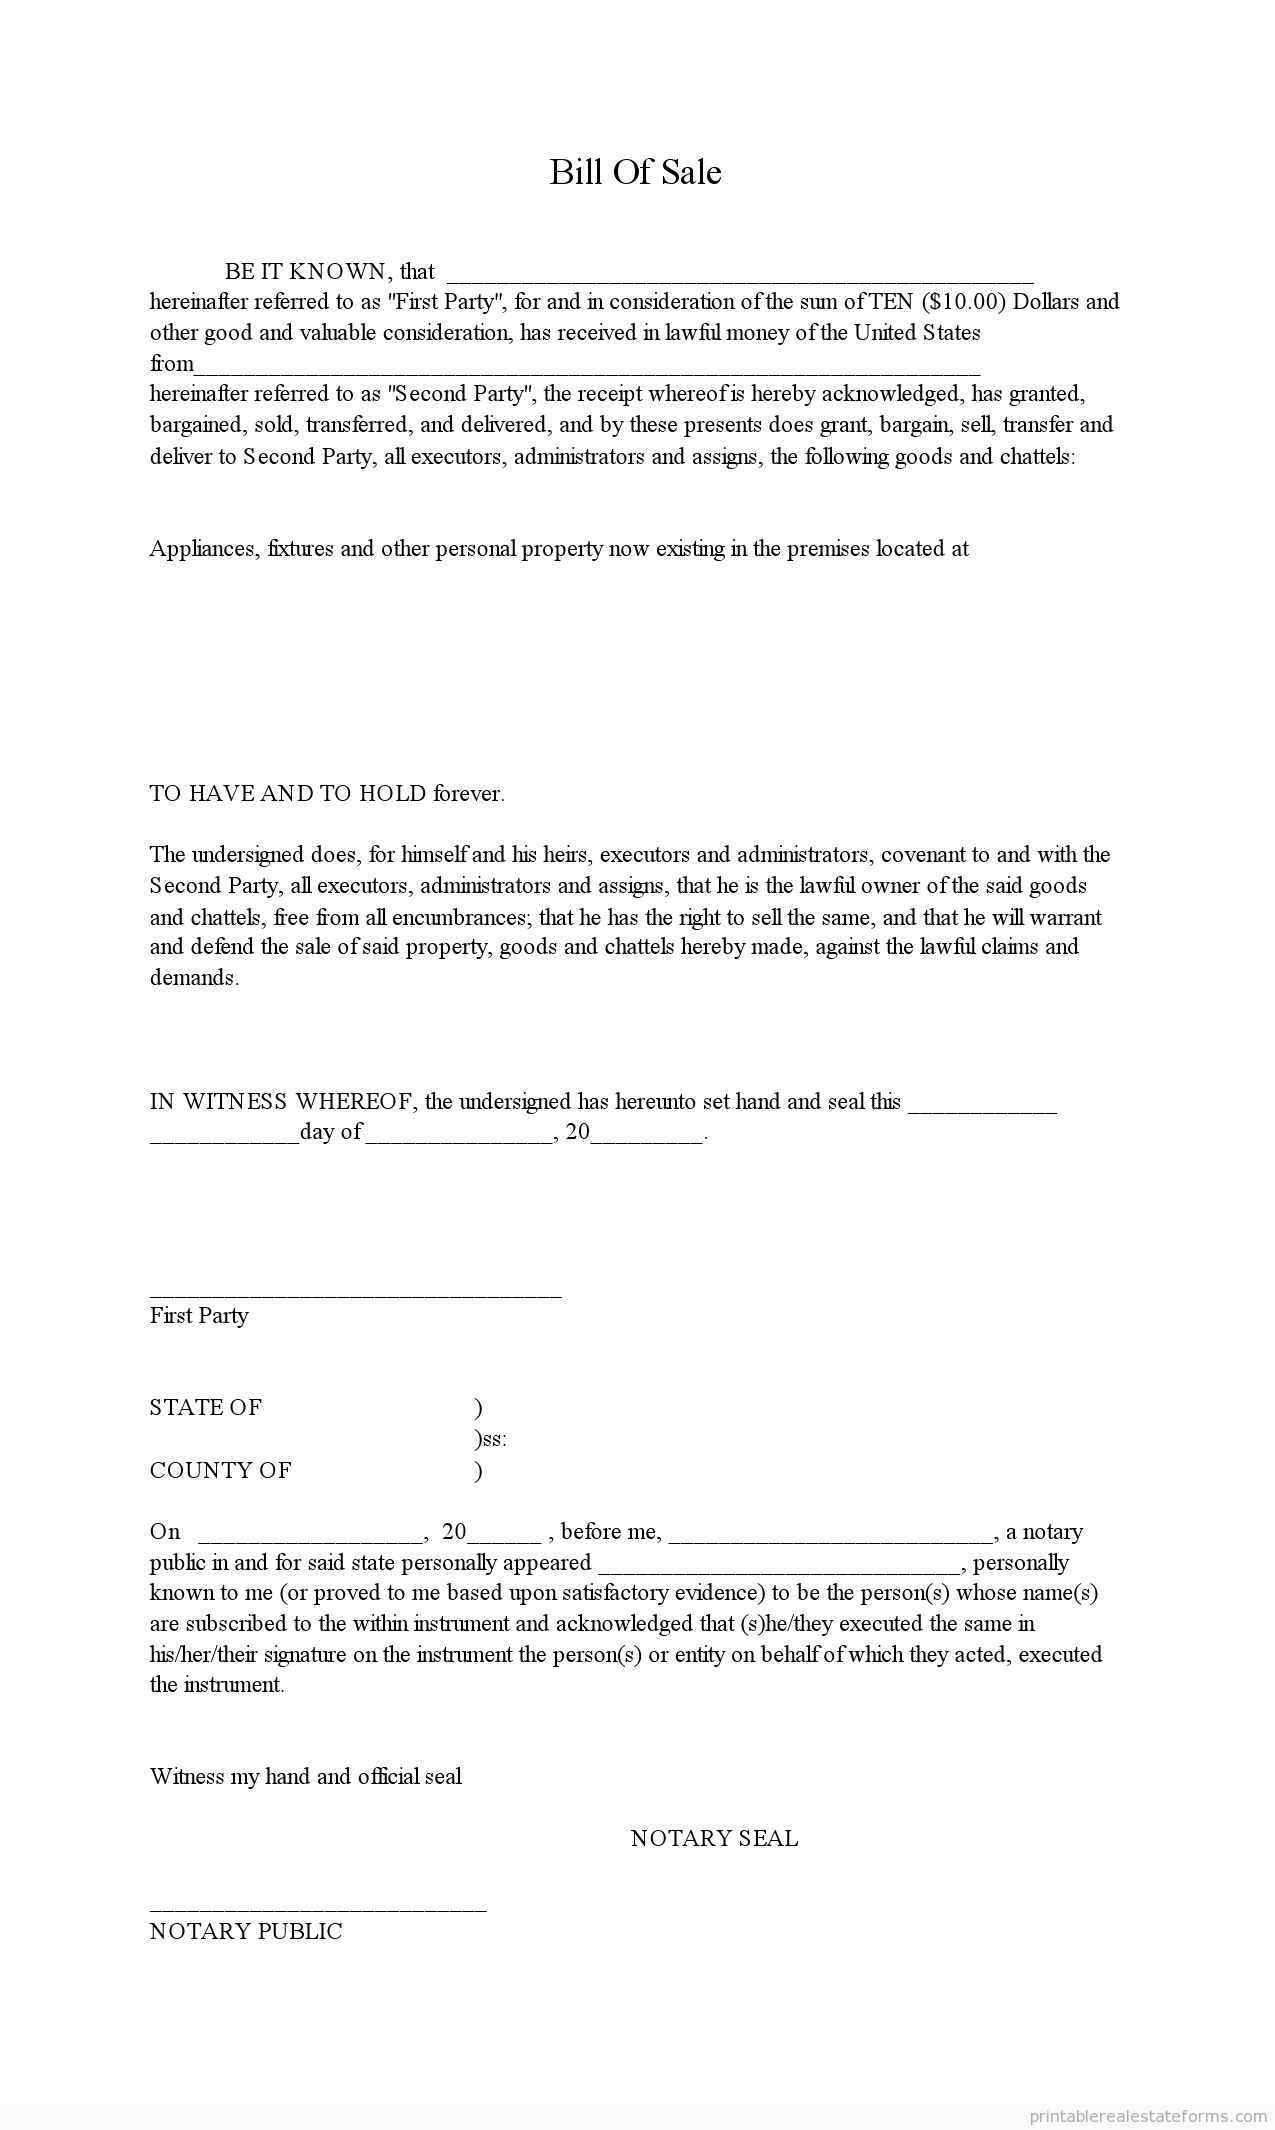 Bill Of Sale Printable Free Luxury Free Bill Of Sale form Motorboat All Boats